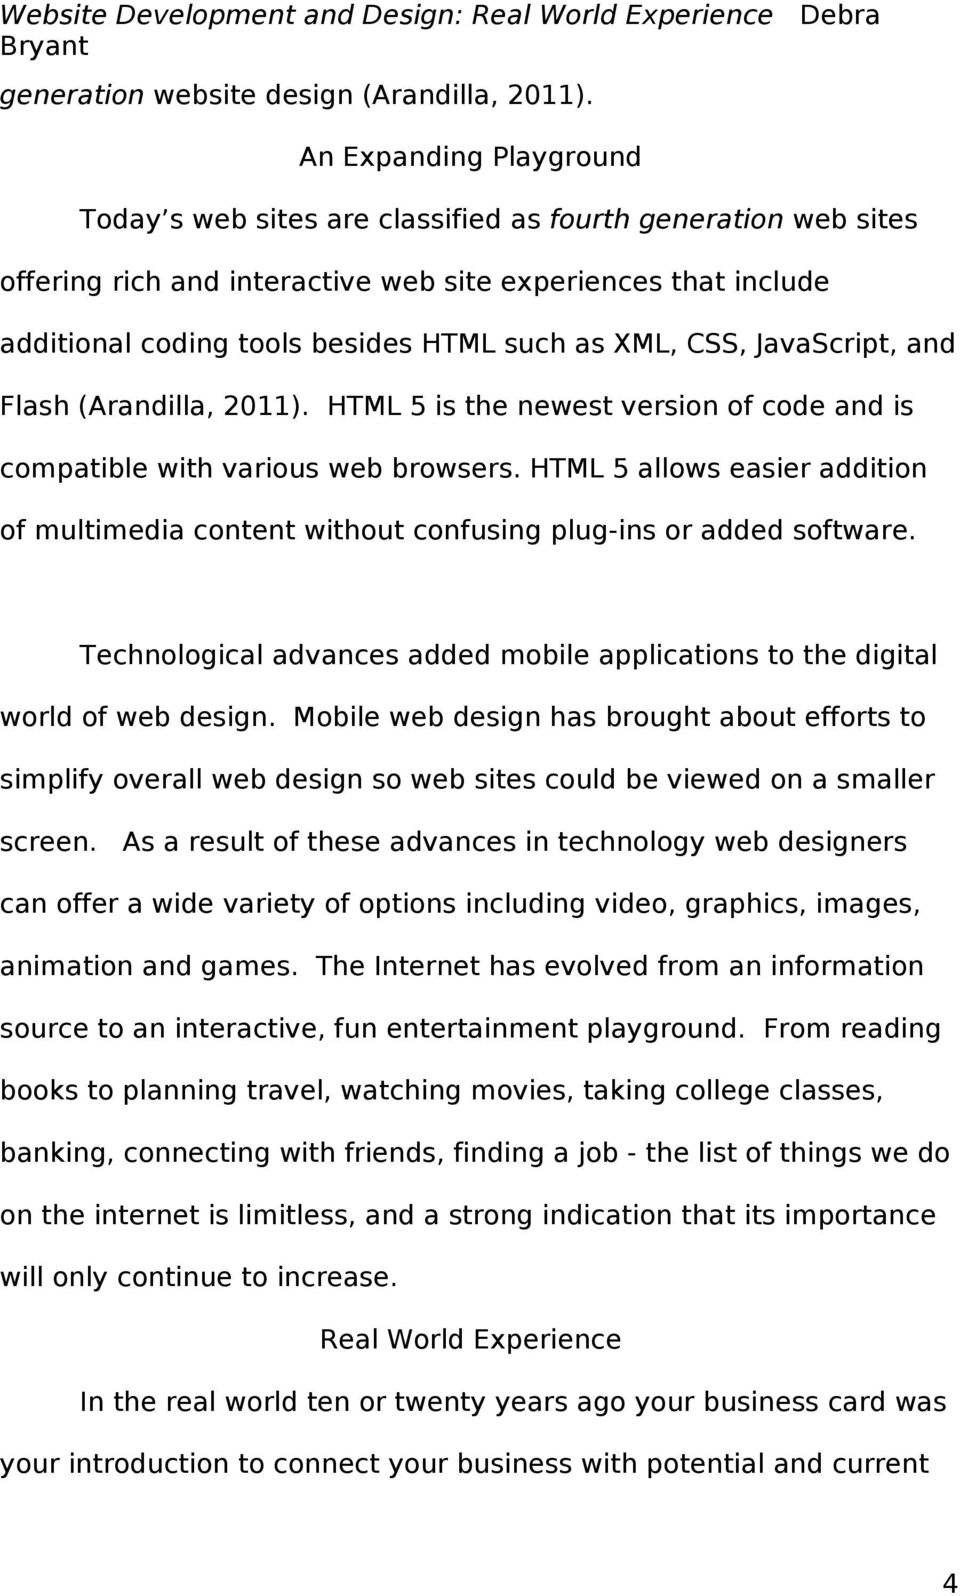 as XML, CSS, JavaScript, and Flash (Arandilla, 2011). HTML 5 is the newest version of code and is compatible with various web browsers.